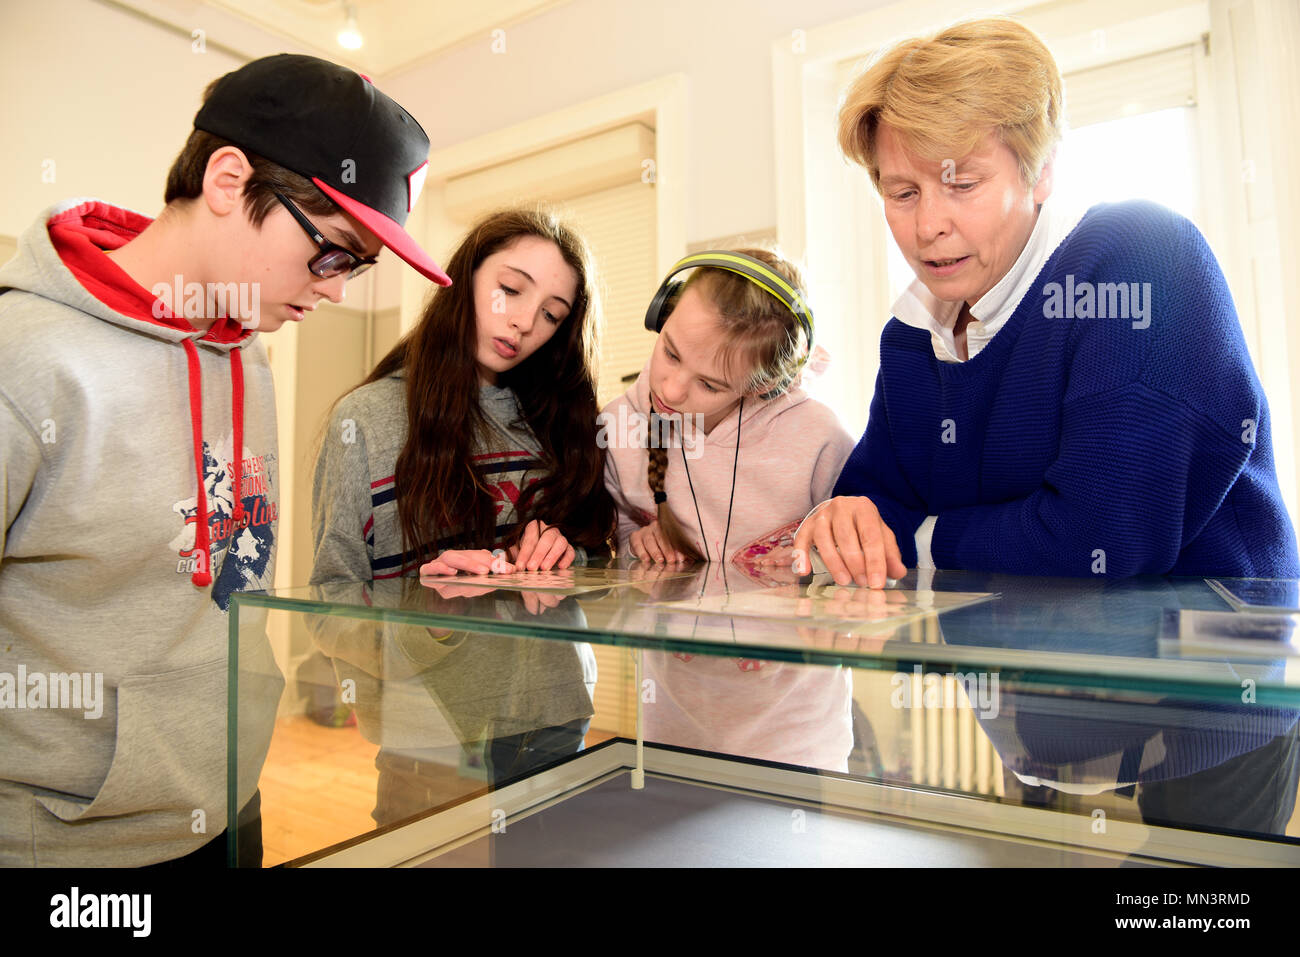 Local schoolchildren & museum official browsing memorabilia about literary icon Sir Arthur Conan Doyle (born 22 May 1859-died 7 July 1930)... - Stock Image